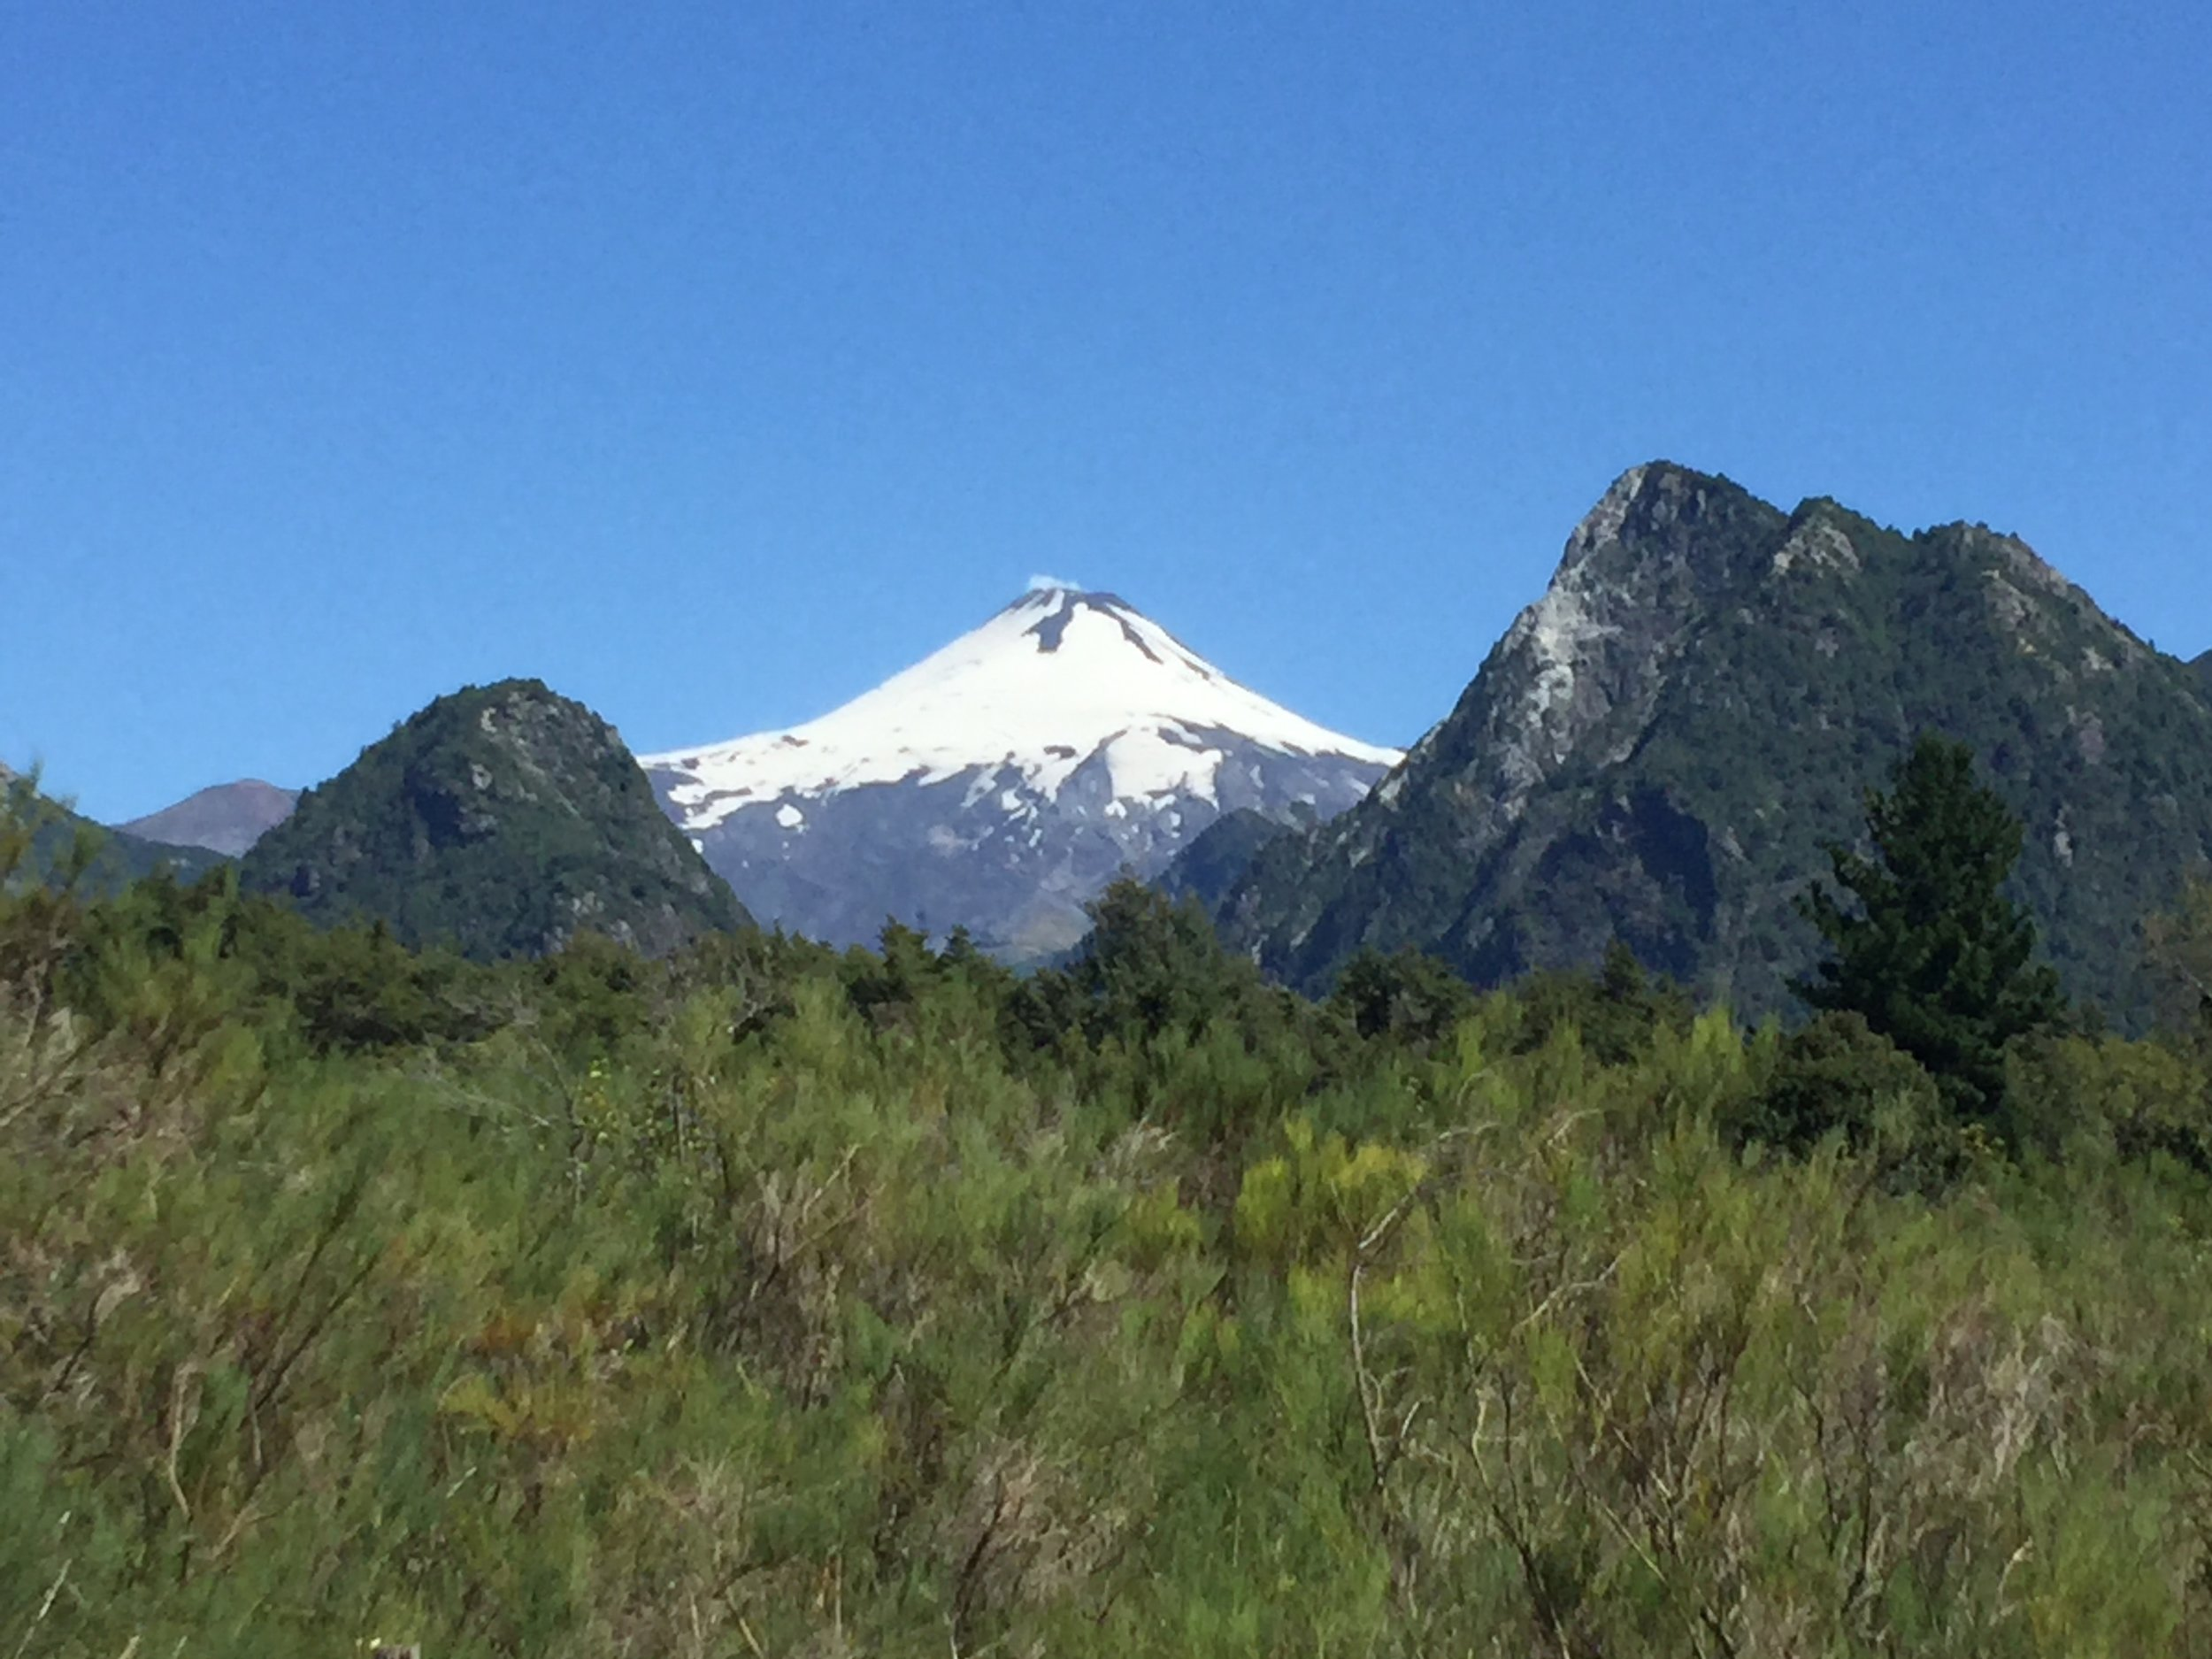 Andes Challenge pic.JPG